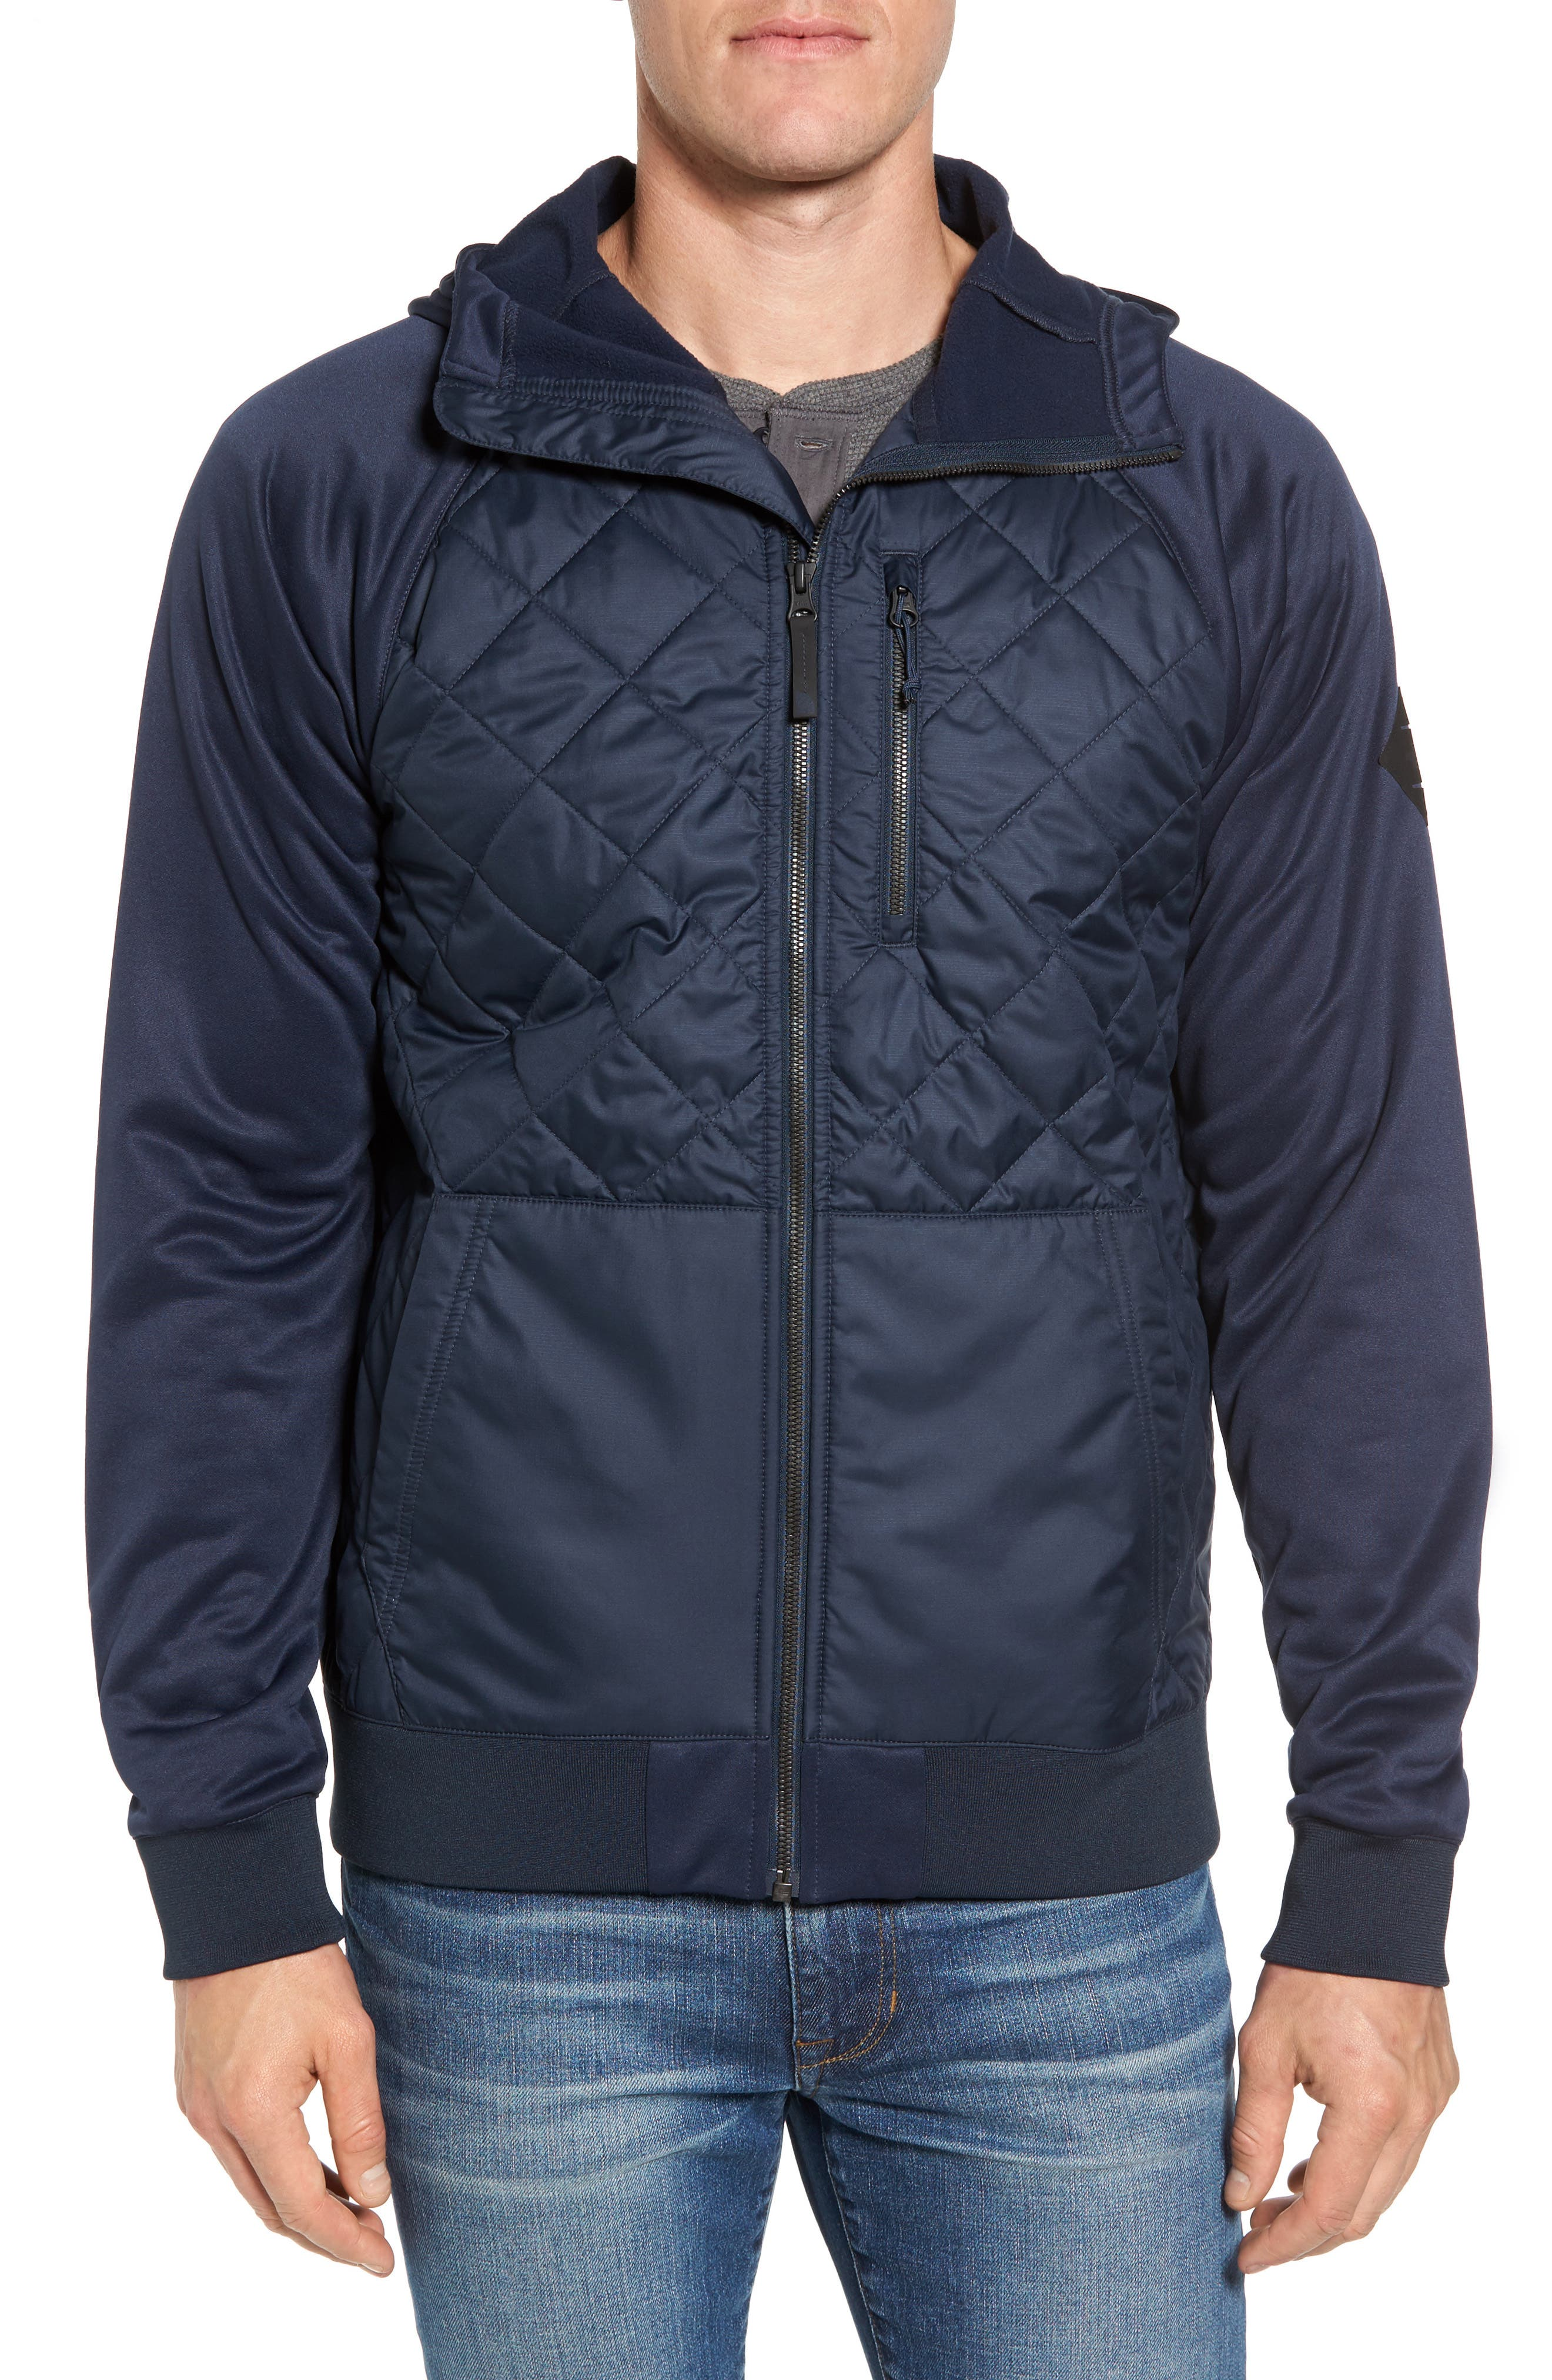 Pilsen Hybrid Jacket,                         Main,                         color,